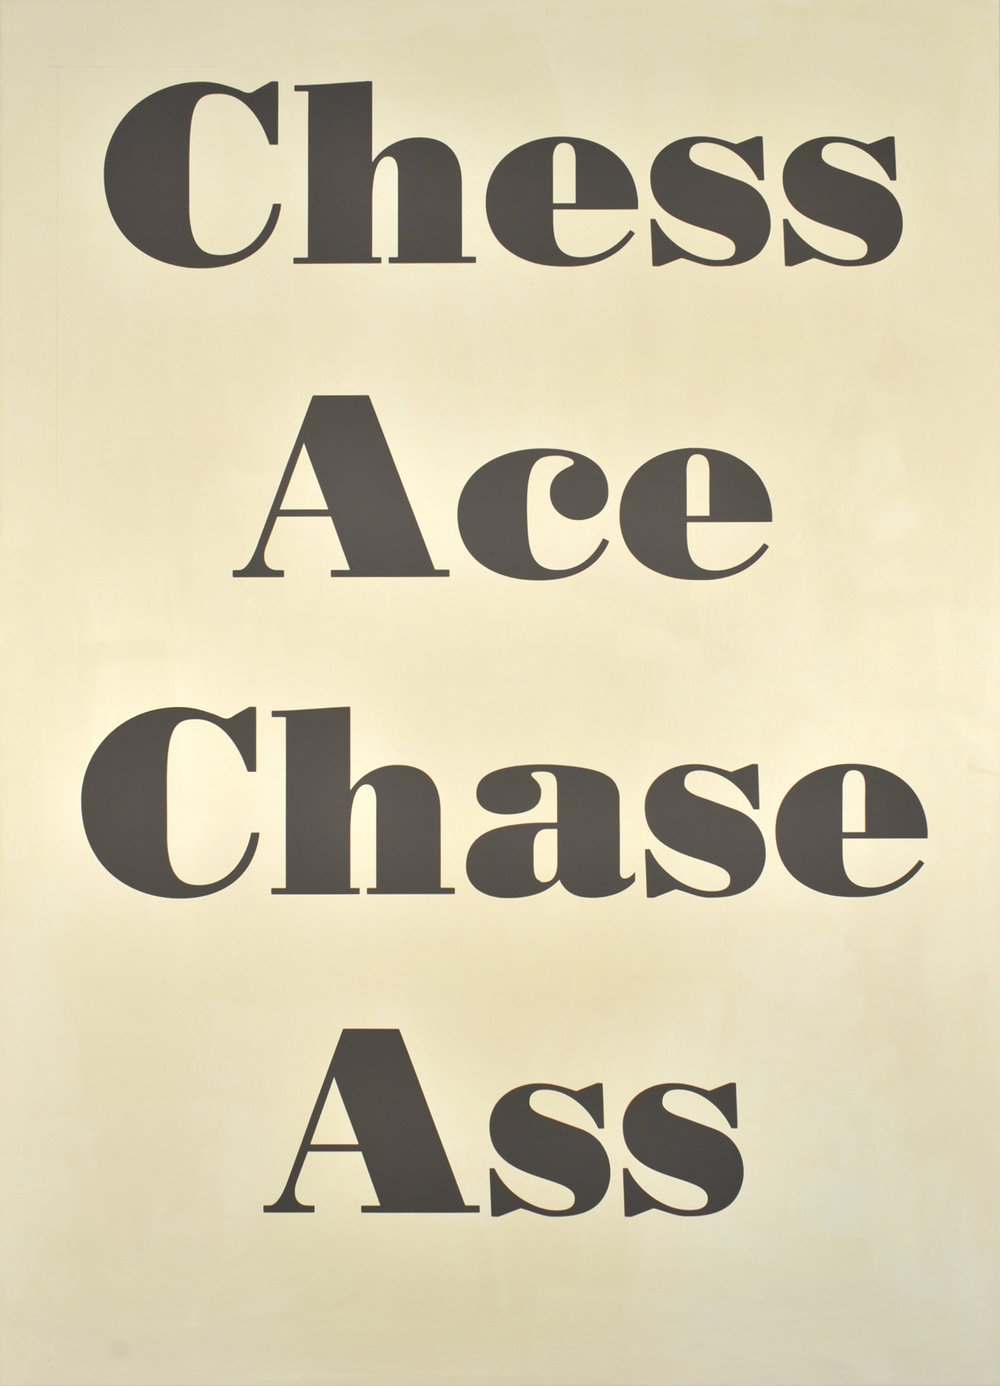 Chess Ace, 2009 acrylic on aluminum 140 x 100 cm - 55 1/8 x 39 3/8 inches